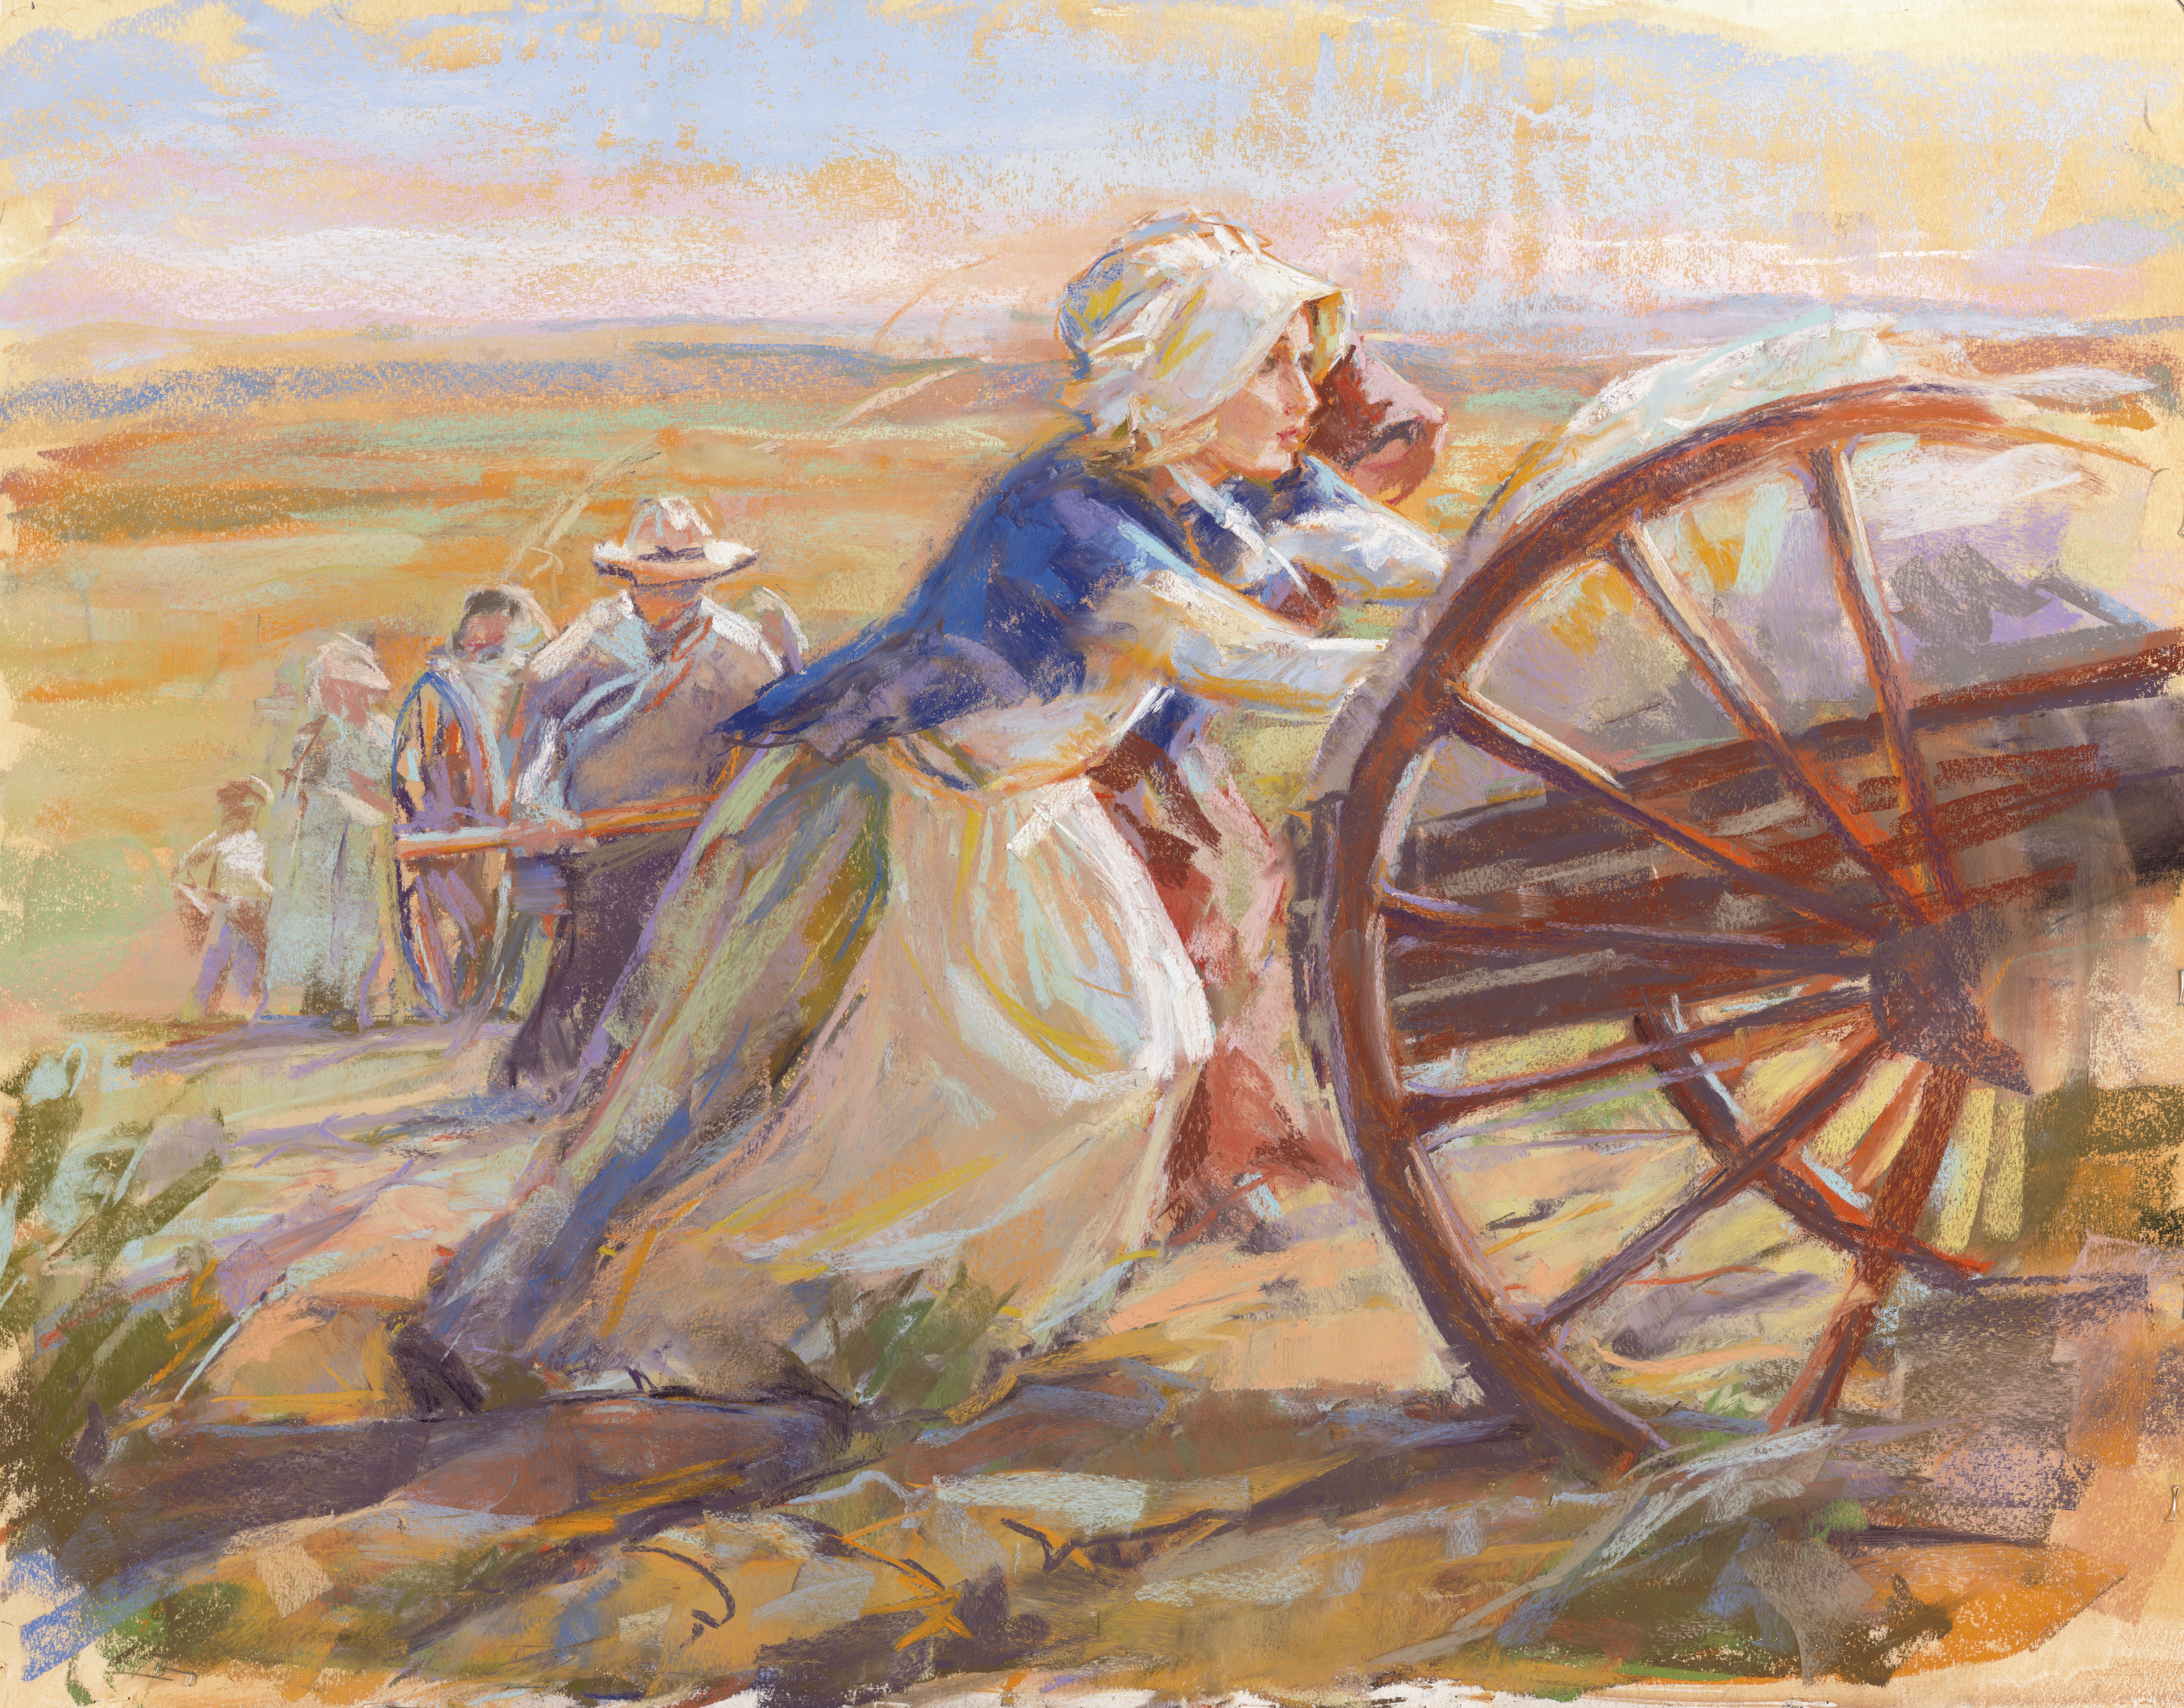 A depiction of pioneer women pushing a handcart, by Julie Rogers.